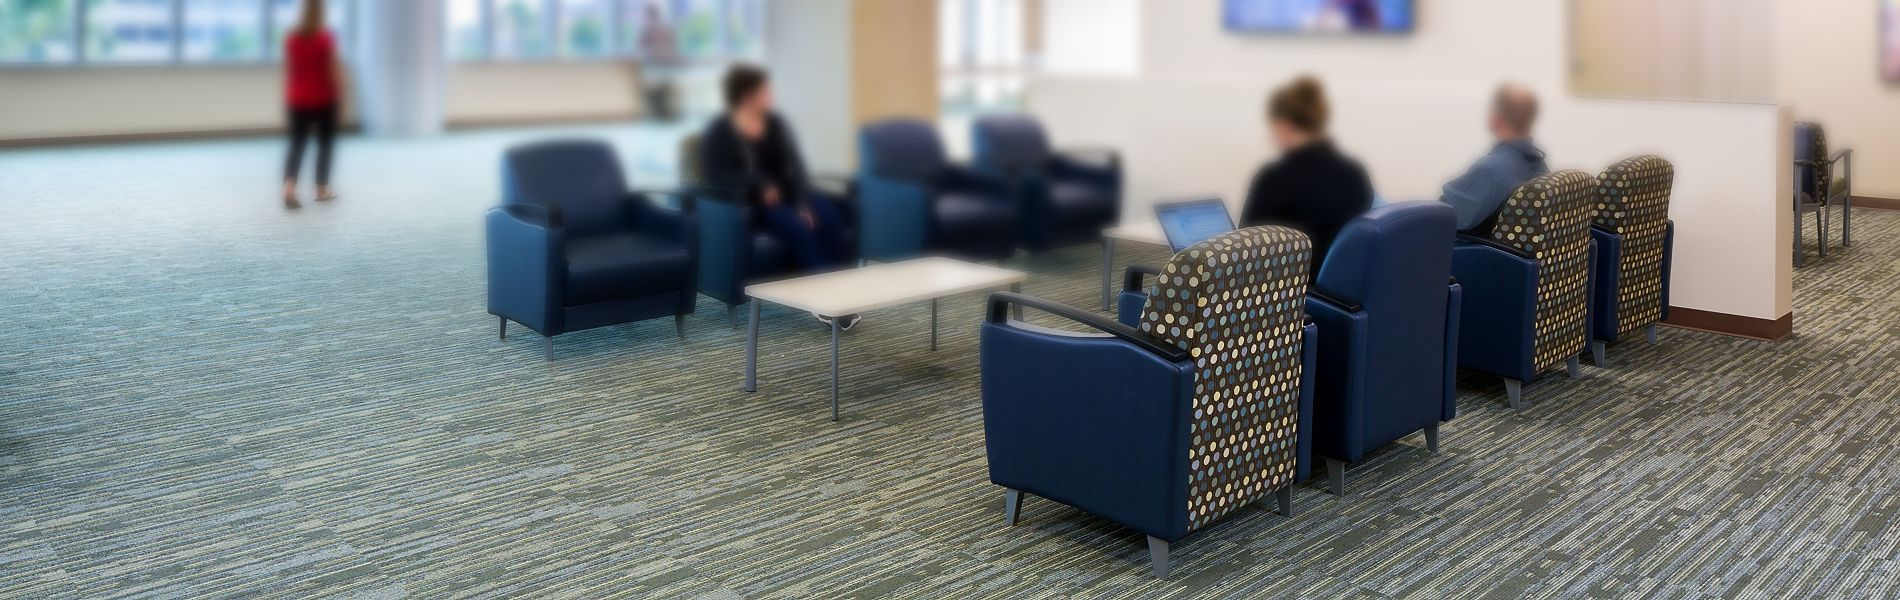 Flooring Solutions For Healthcare Environments Mohawk Group